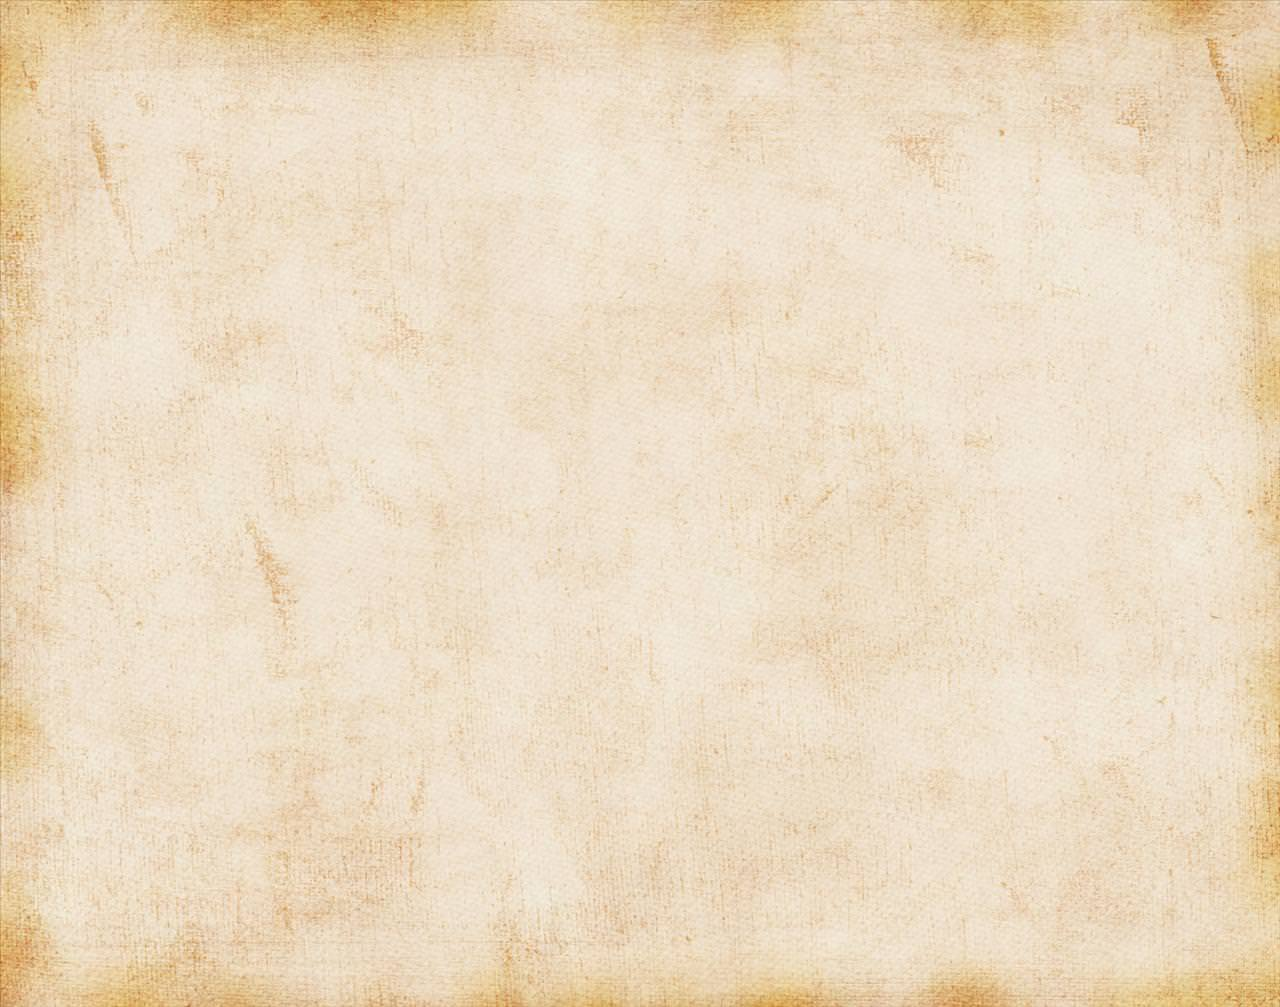 40 Vintage Background   PSD Vector EPS JPG Download 1280x1007